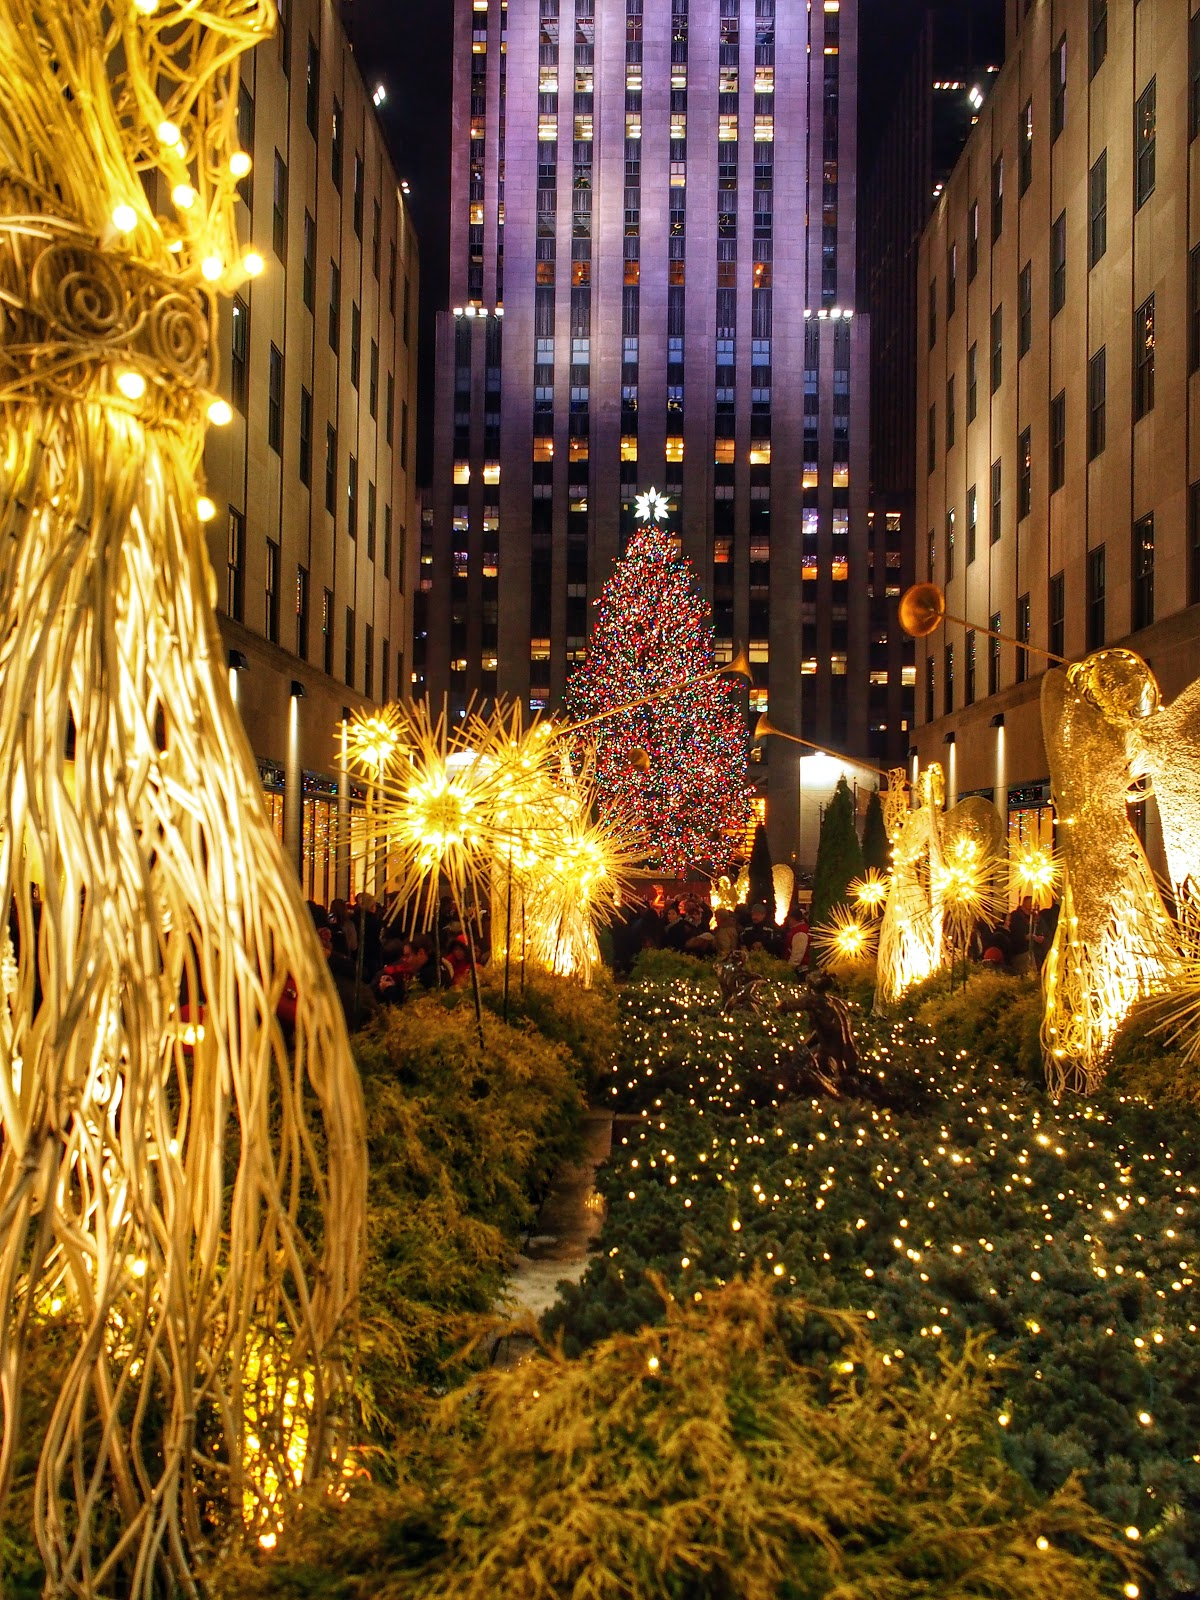 Rock Center Tree without the Twinkle (2013) #rockcentertreewithoutthetwinkle #holidays #holidaysinNYC #rockefellercenter #NYC ©2014 Nancy Lundebjerg